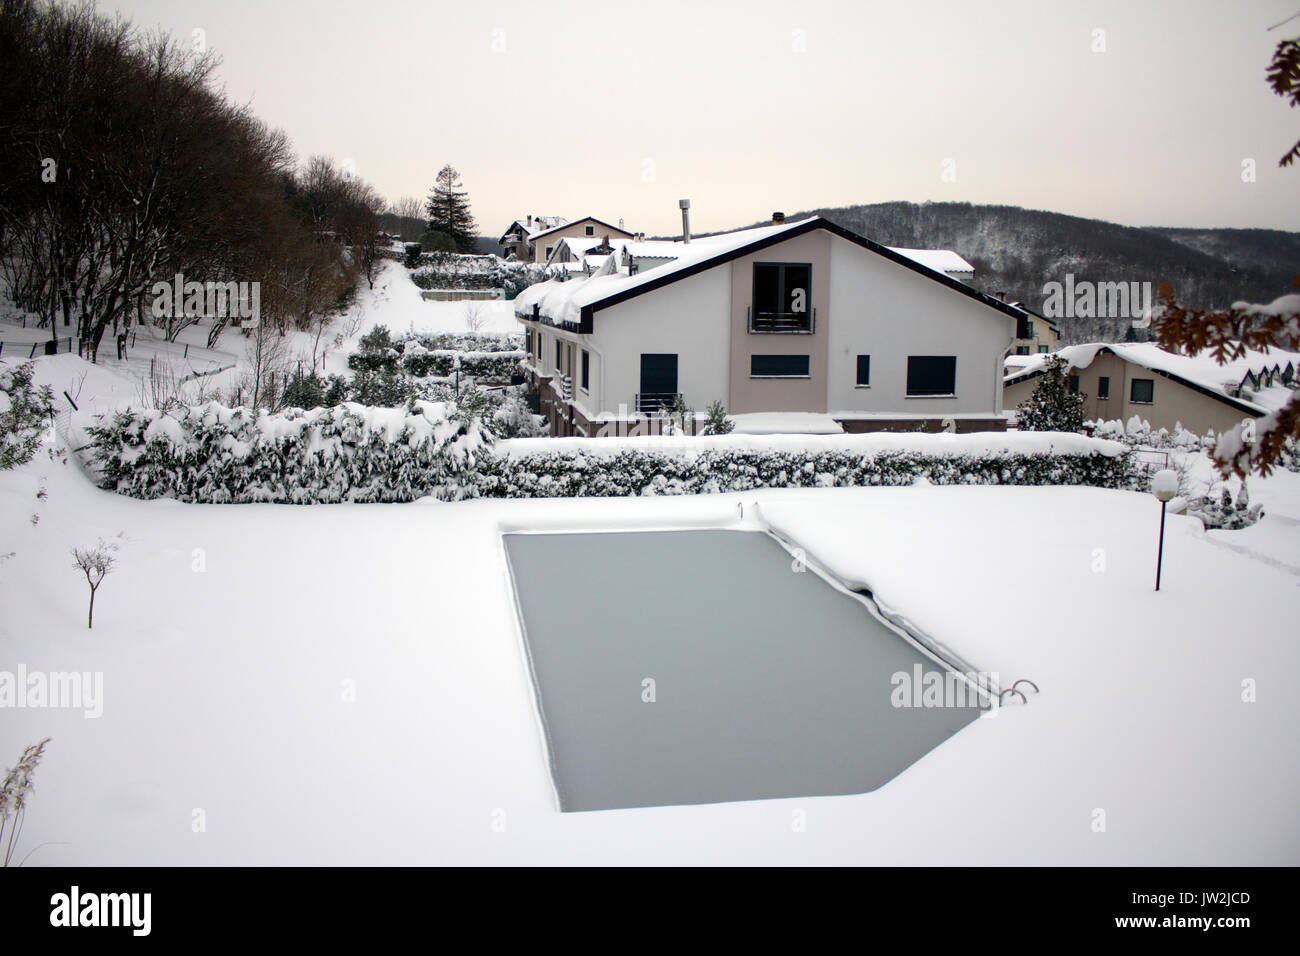 Open air swimming stock photos open air swimming stock images alamy for Opening swimming pool after winter